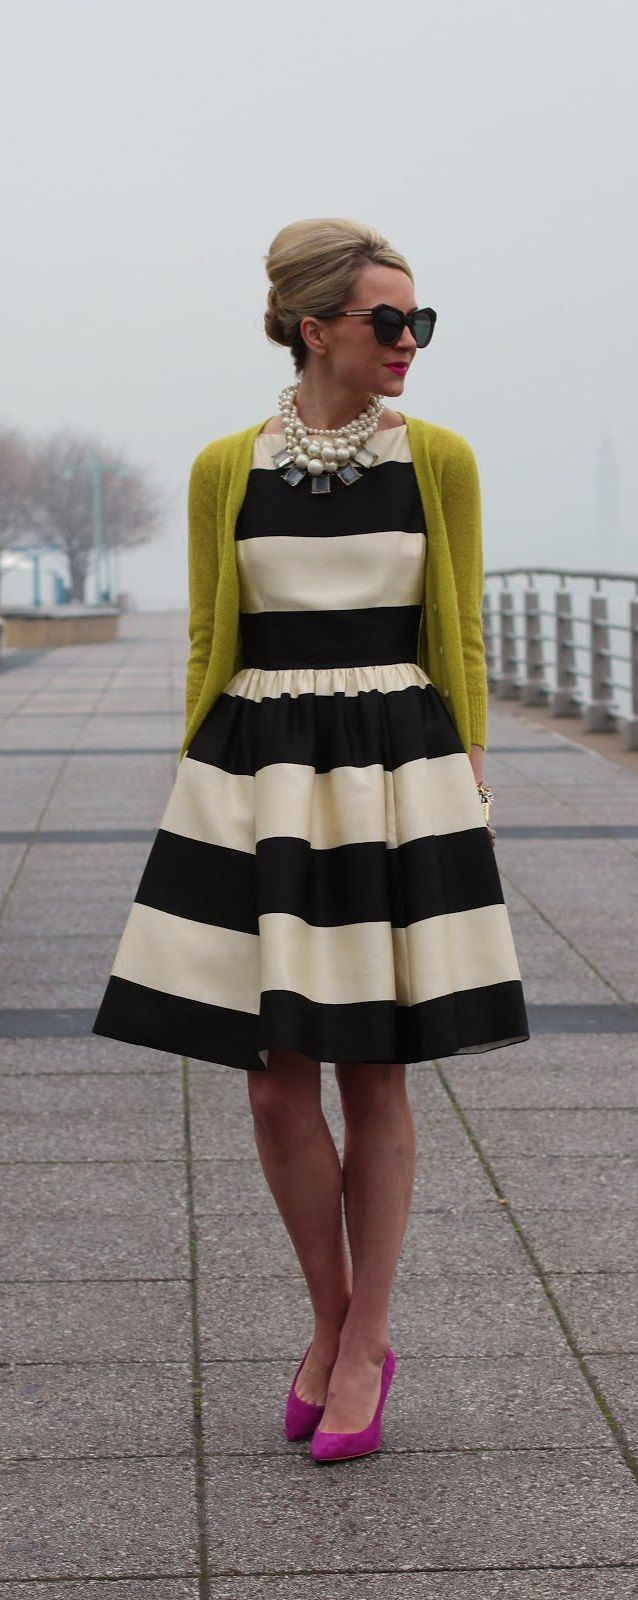 LOVE a good striped tunic dress! see my favorite on southern elle style! http://southernellestyle.com/blogfeed/the-cutest-hotel-on-lake-washington